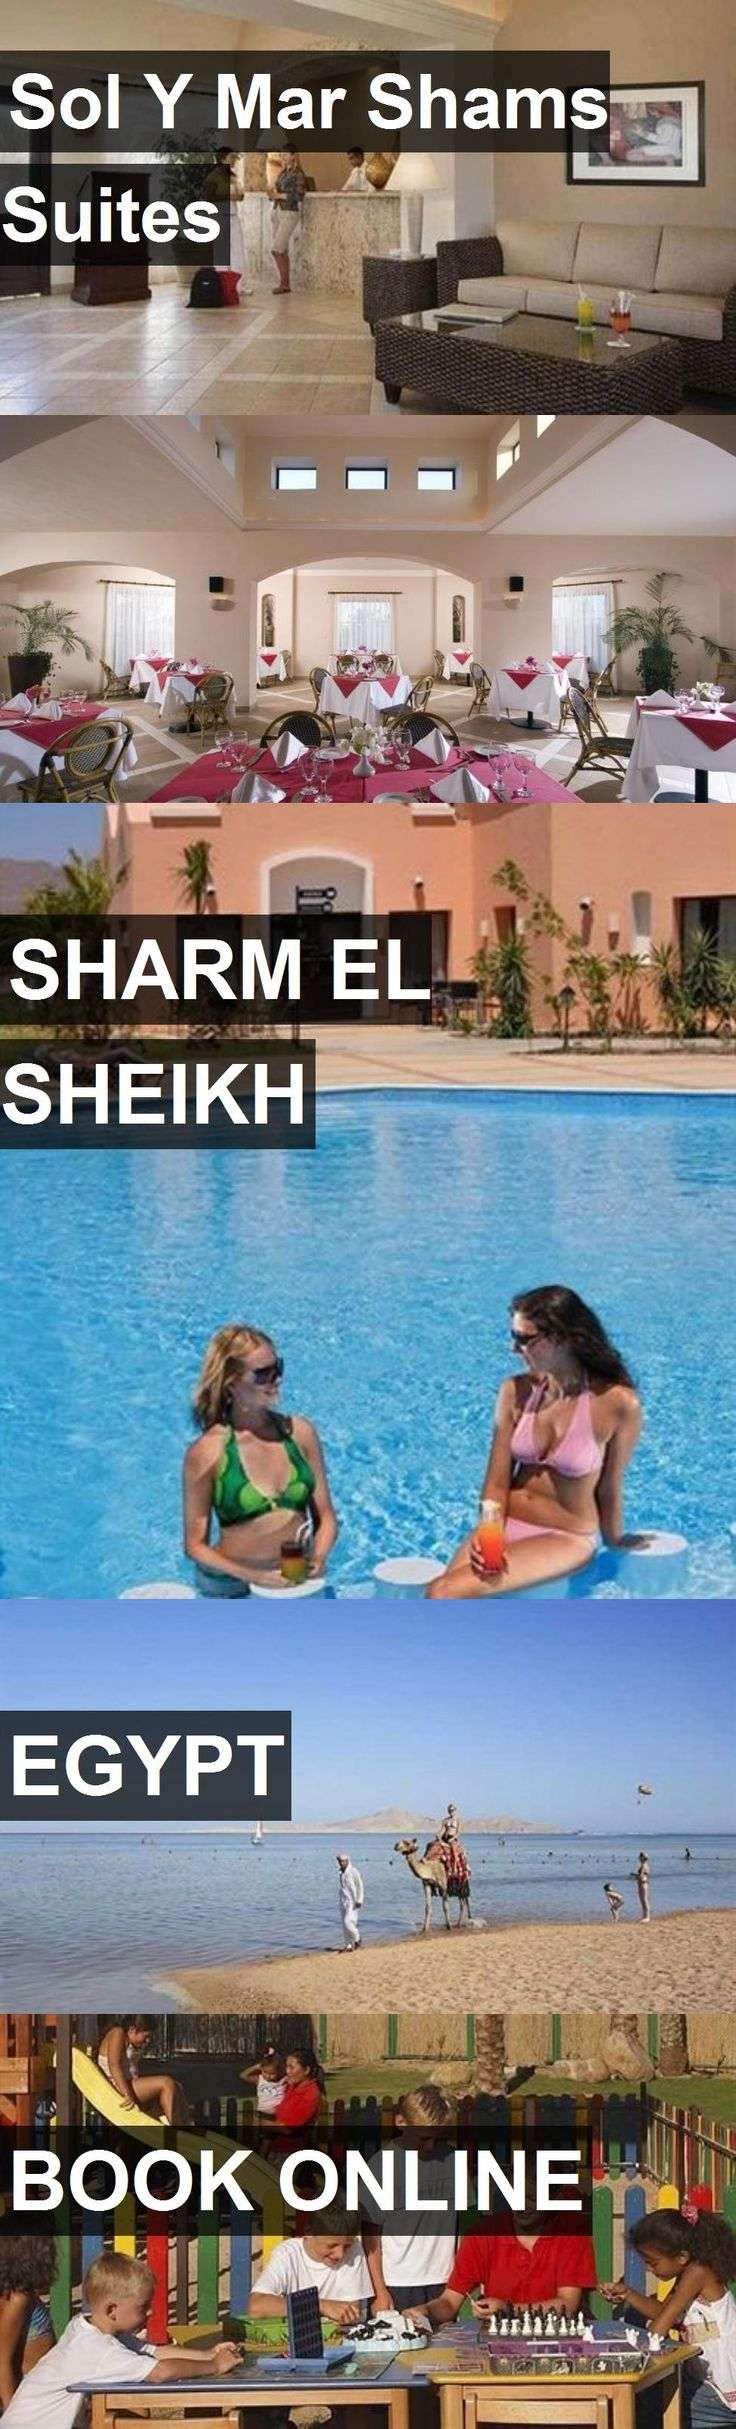 Hotel Sol Y Mar Shams Suites in Sharm el Sheikh, Egypt. For more information, photos, reviews and best prices please follow the link. #Egypt #SharmelSheikh #travel #vacation #hotel